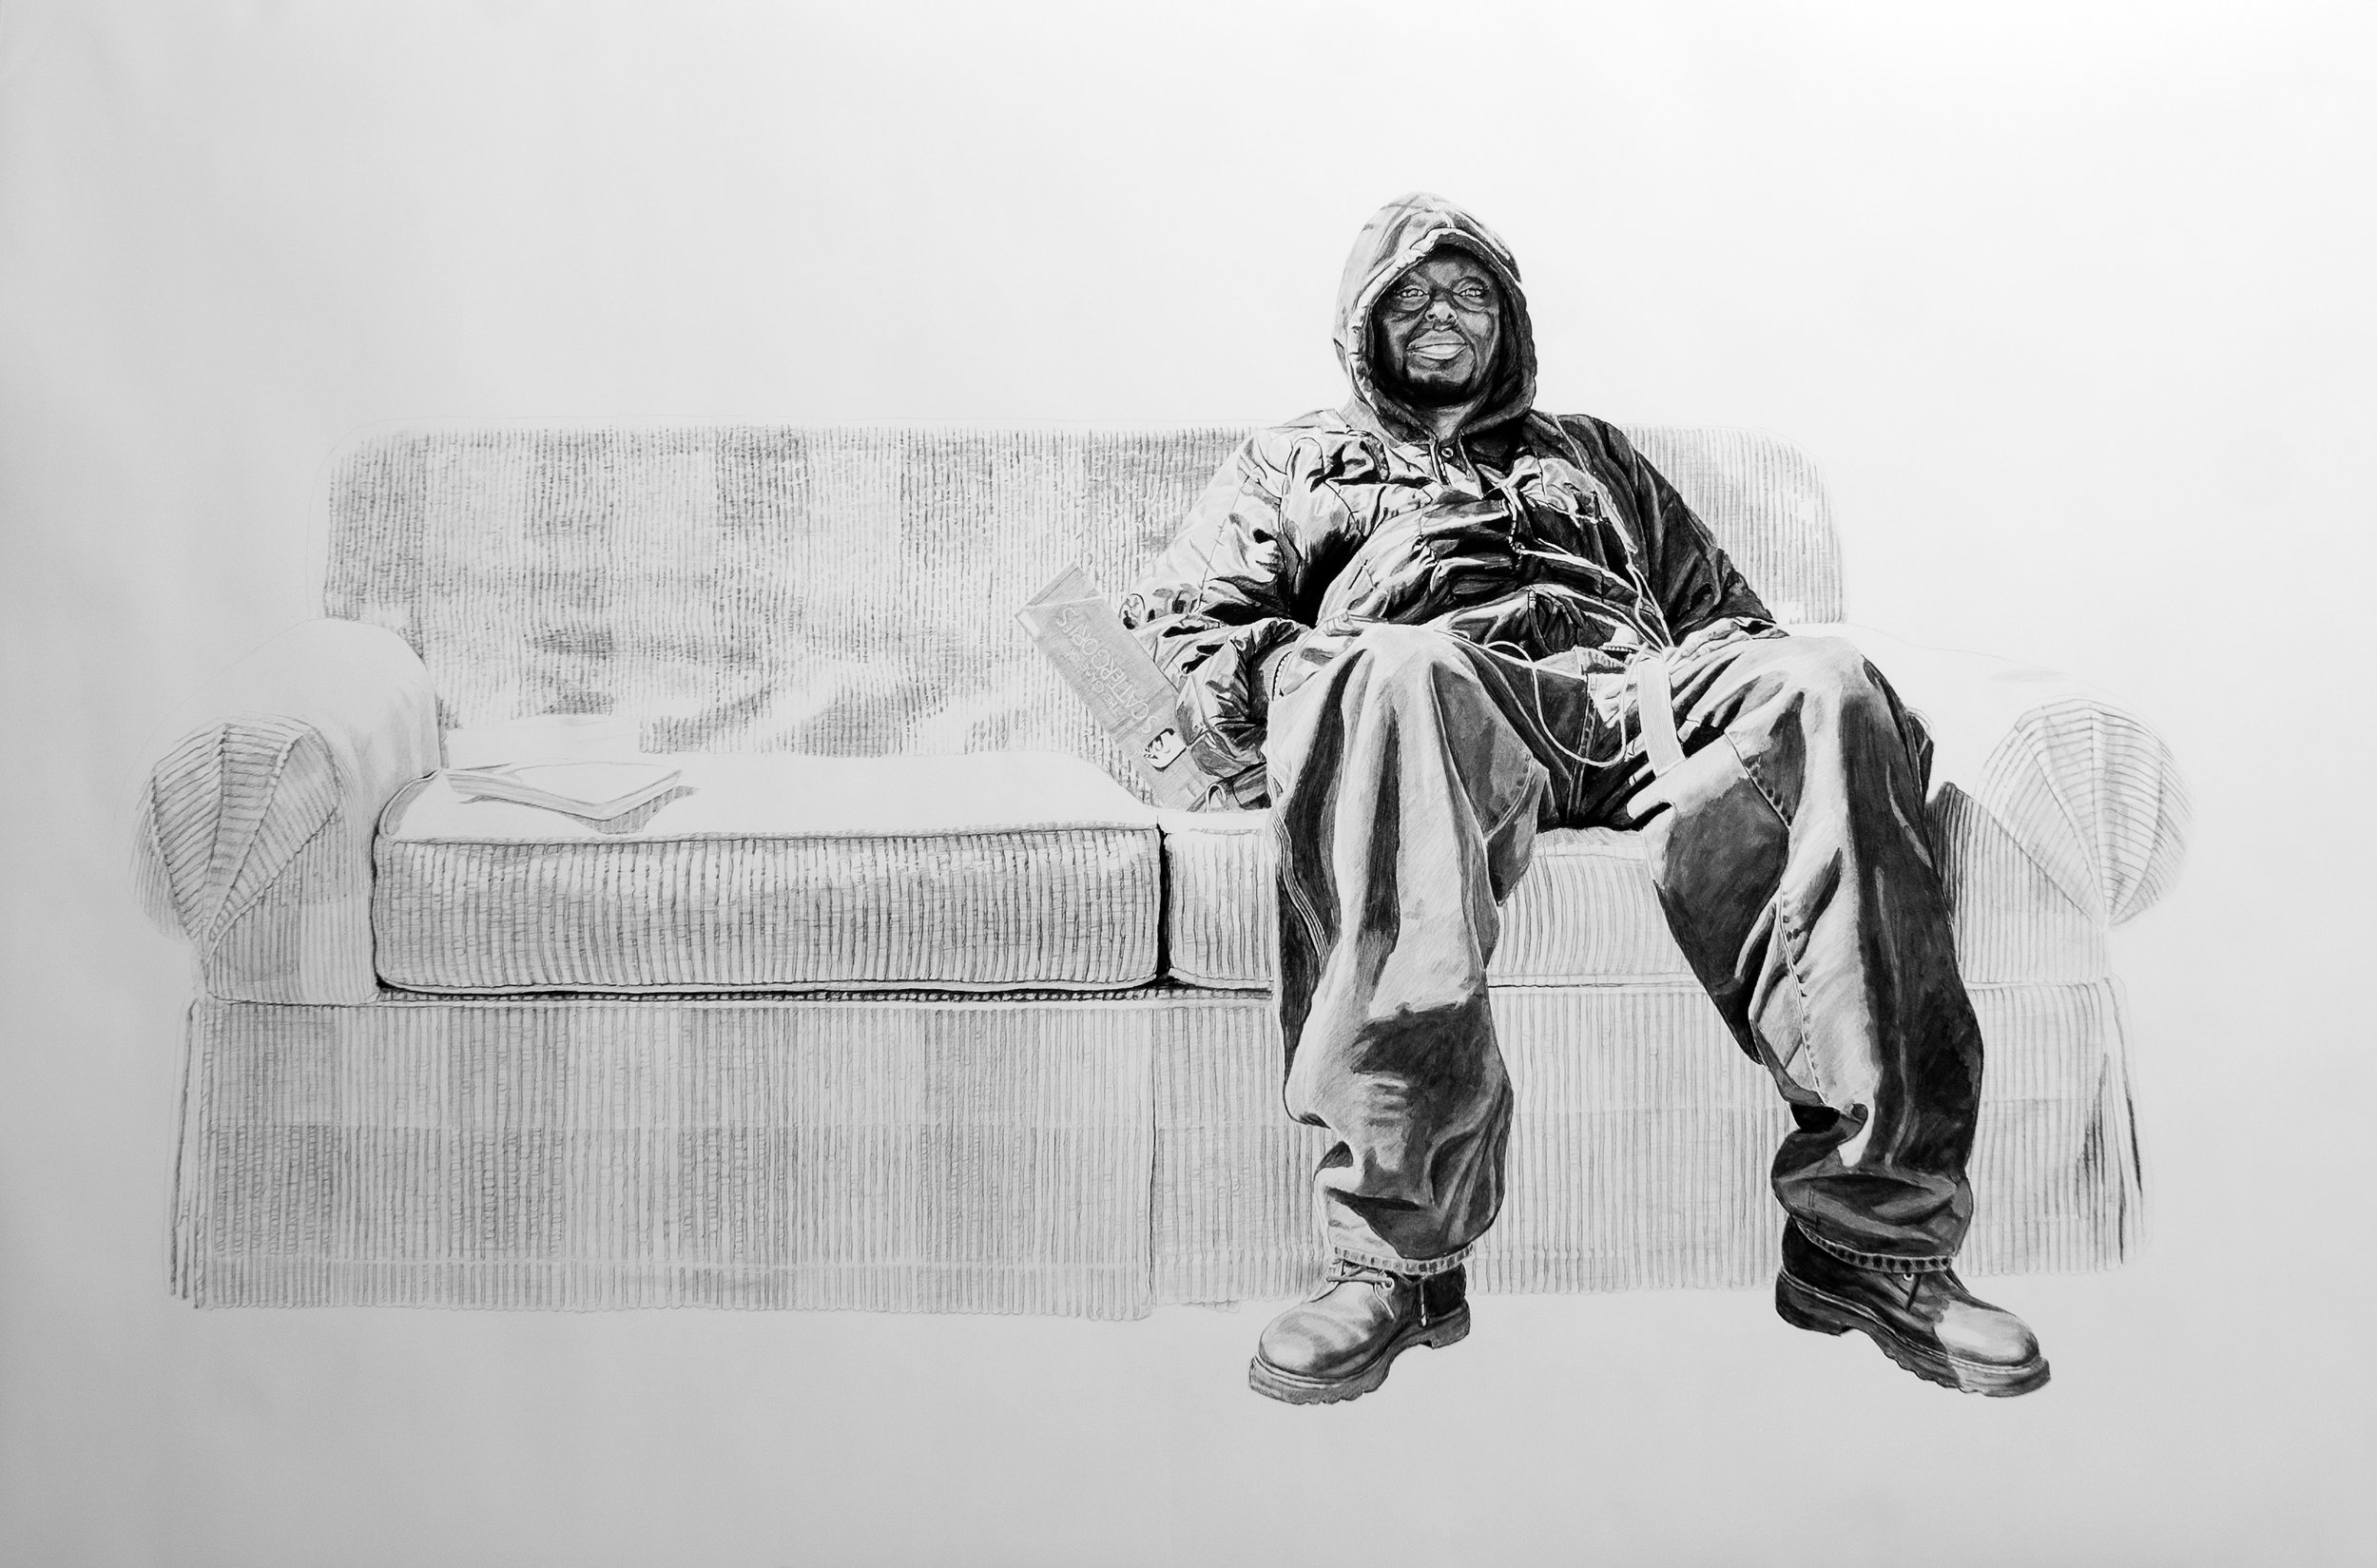 Jason on a Couch, Charcoal & Graphite on Paper,56x87 inches